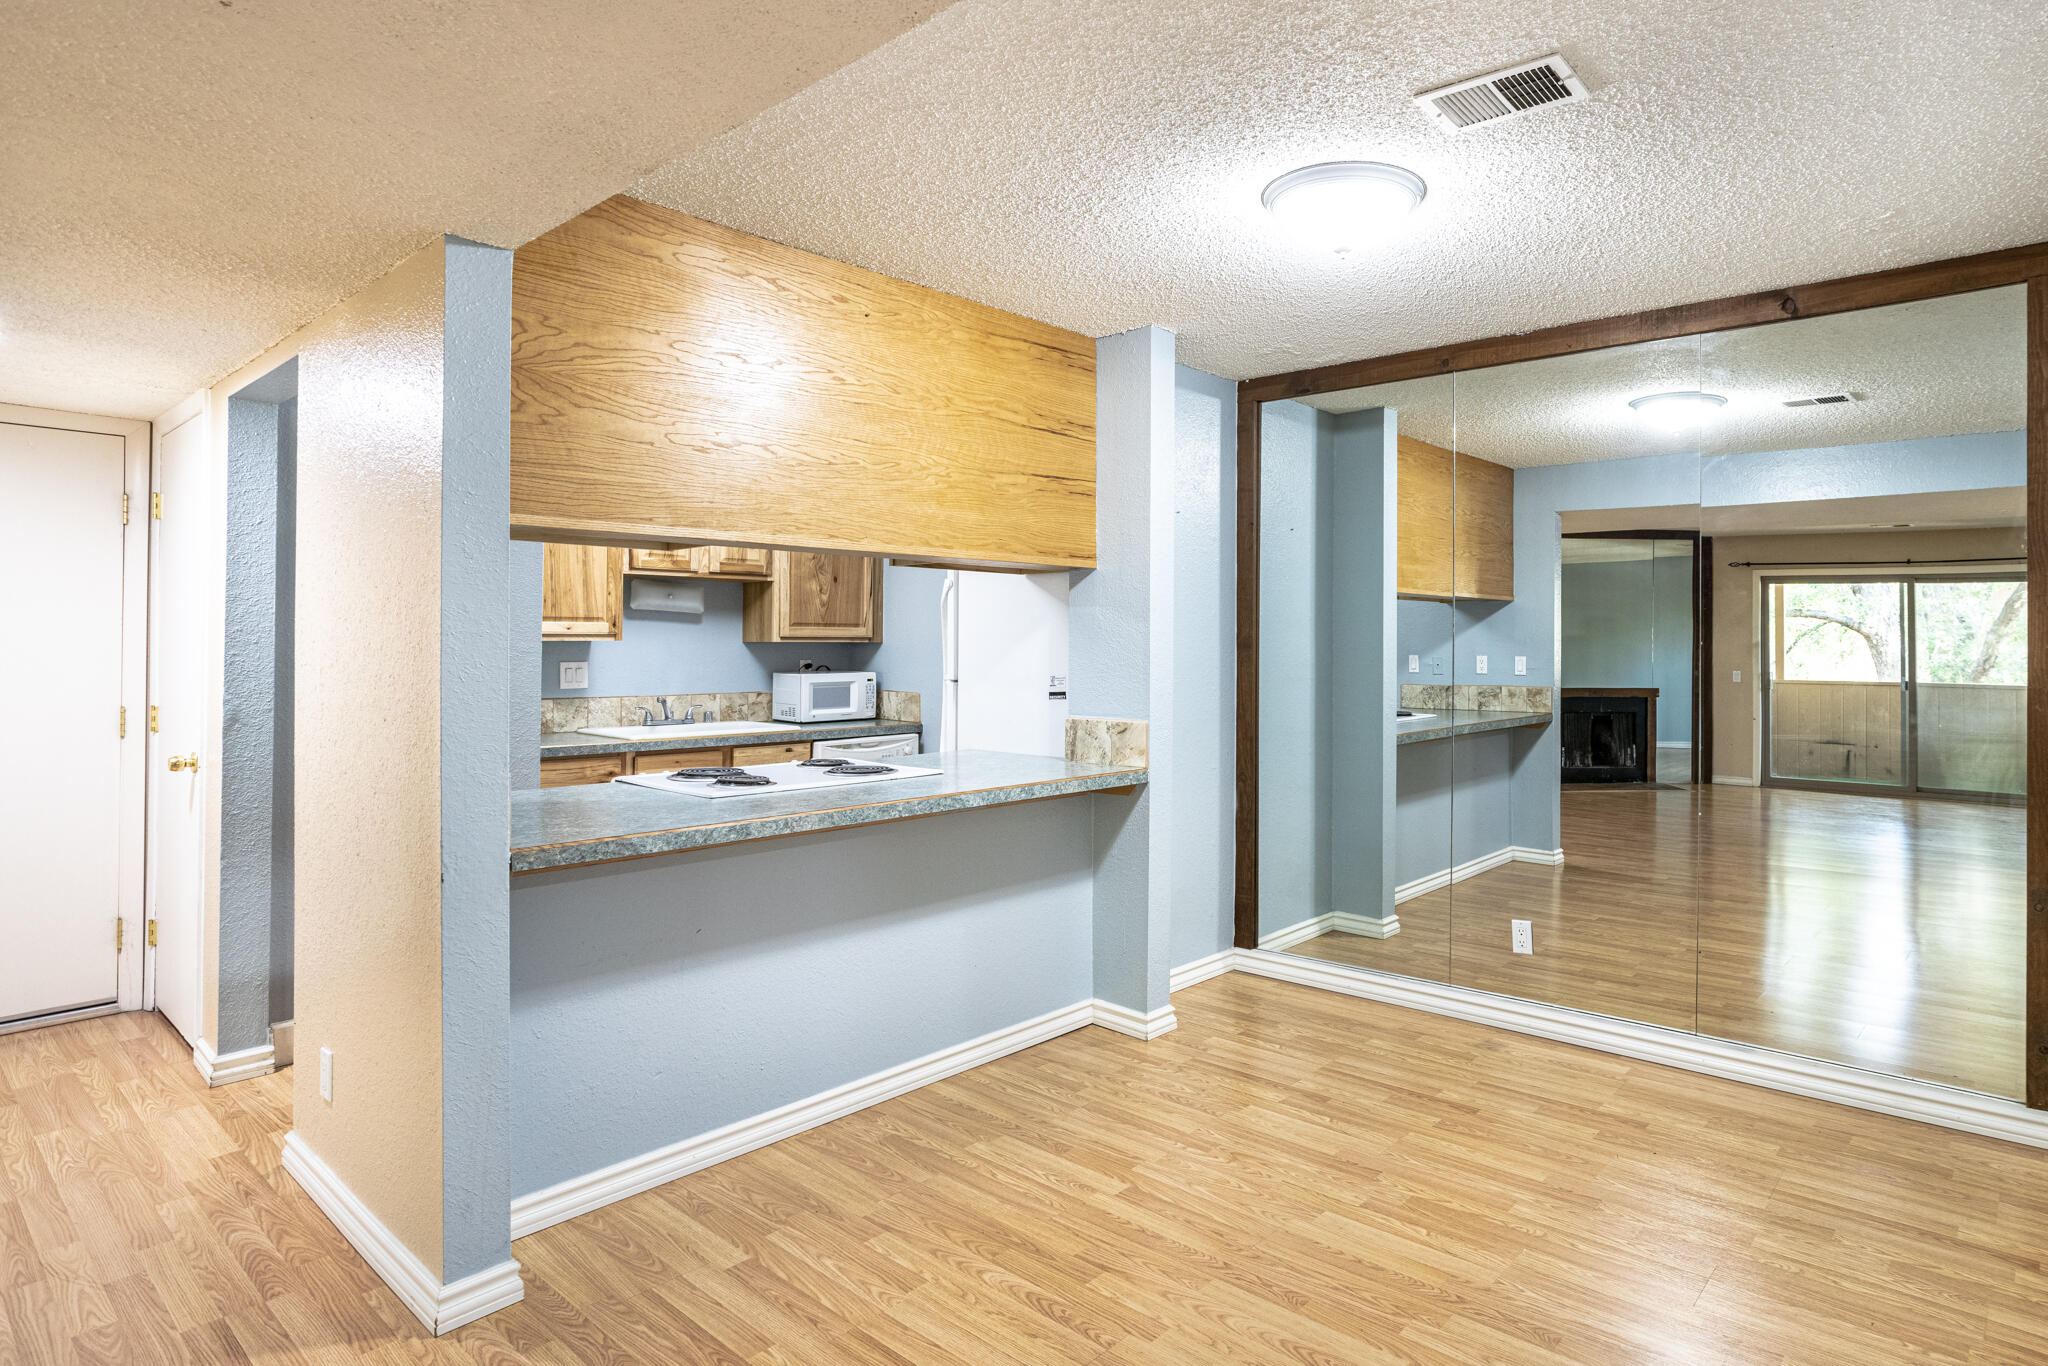 Great condo!  Come see this jewel at the Hillcrest Condominiums.  Much sought after condos with amenities to boot.  Bring your buyers - new paint, new carpet, well cared for and priced to move.